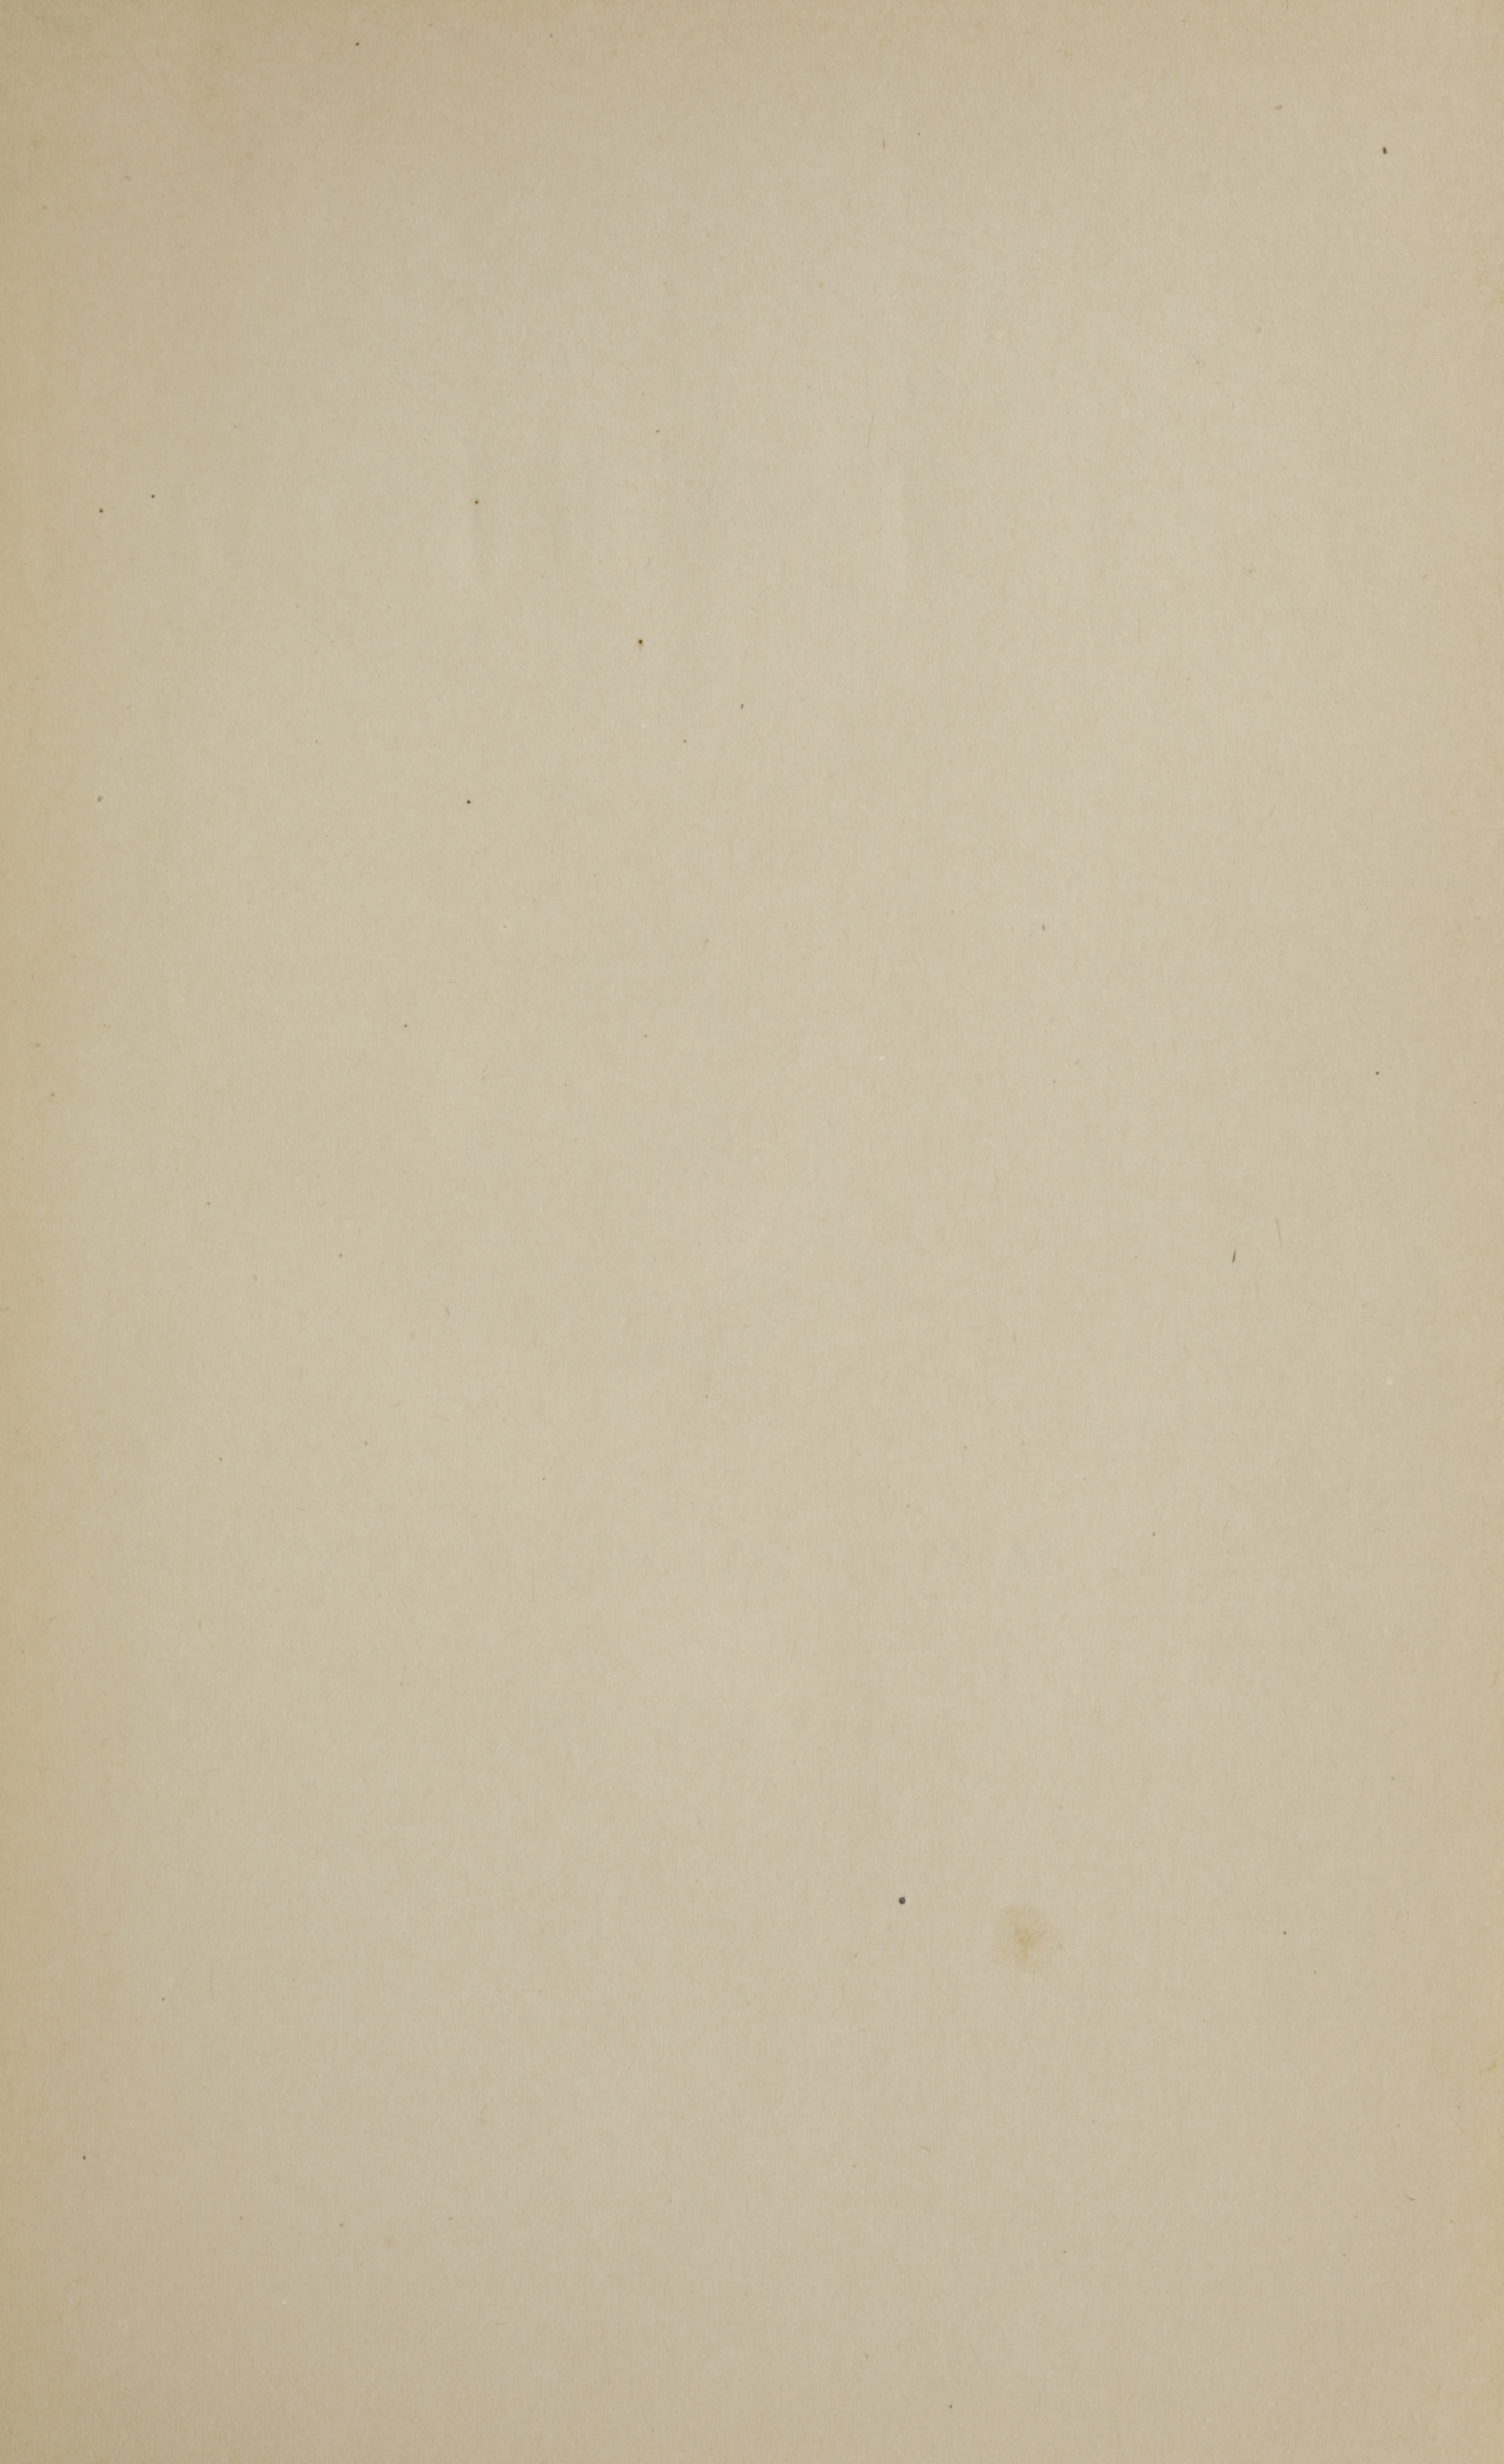 Charleston Yearbook, 1912, blank page